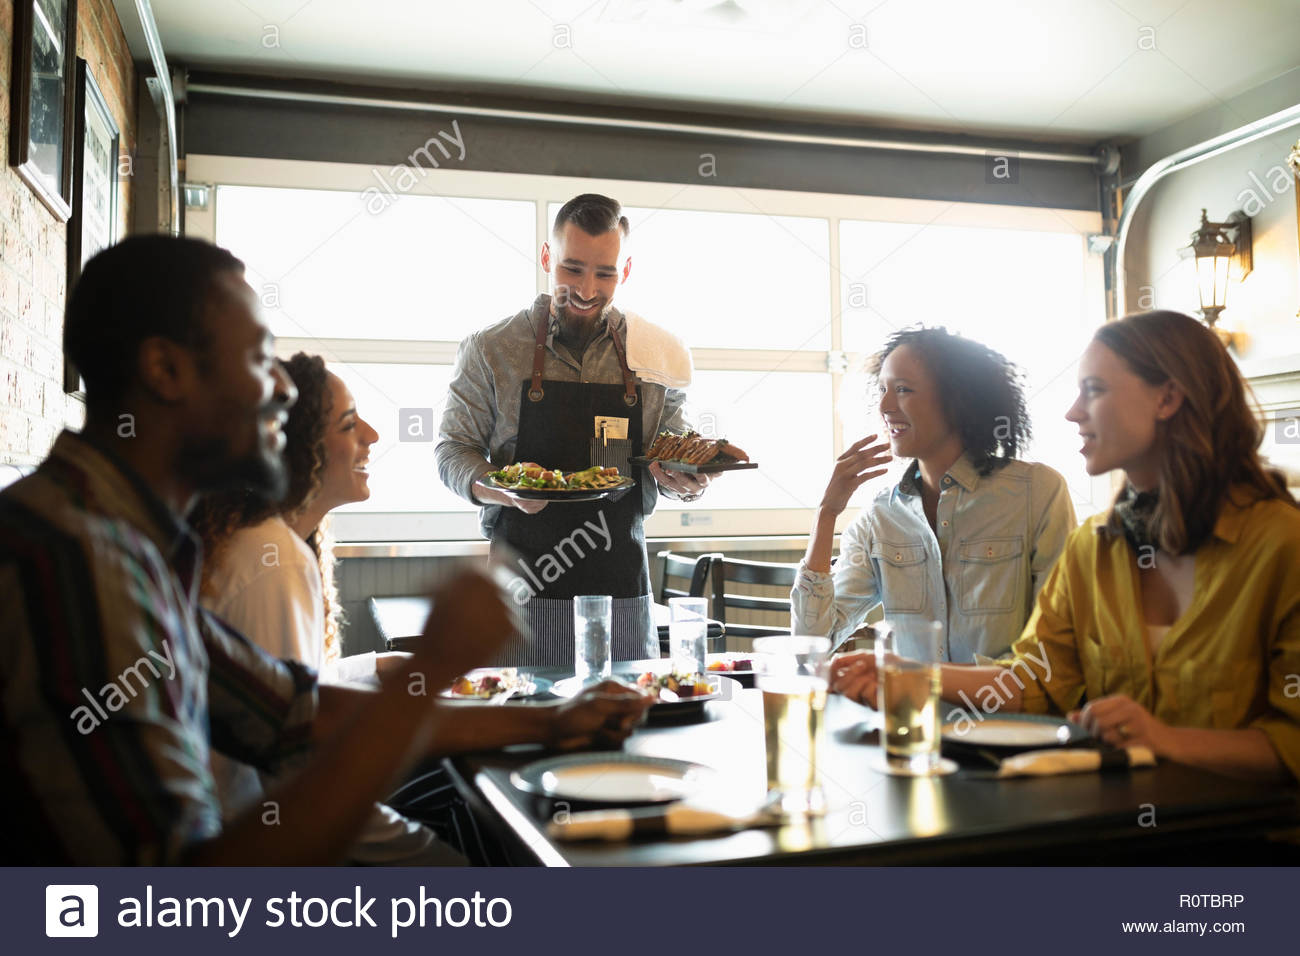 Waiter serving food to friends in bar - Stock Image